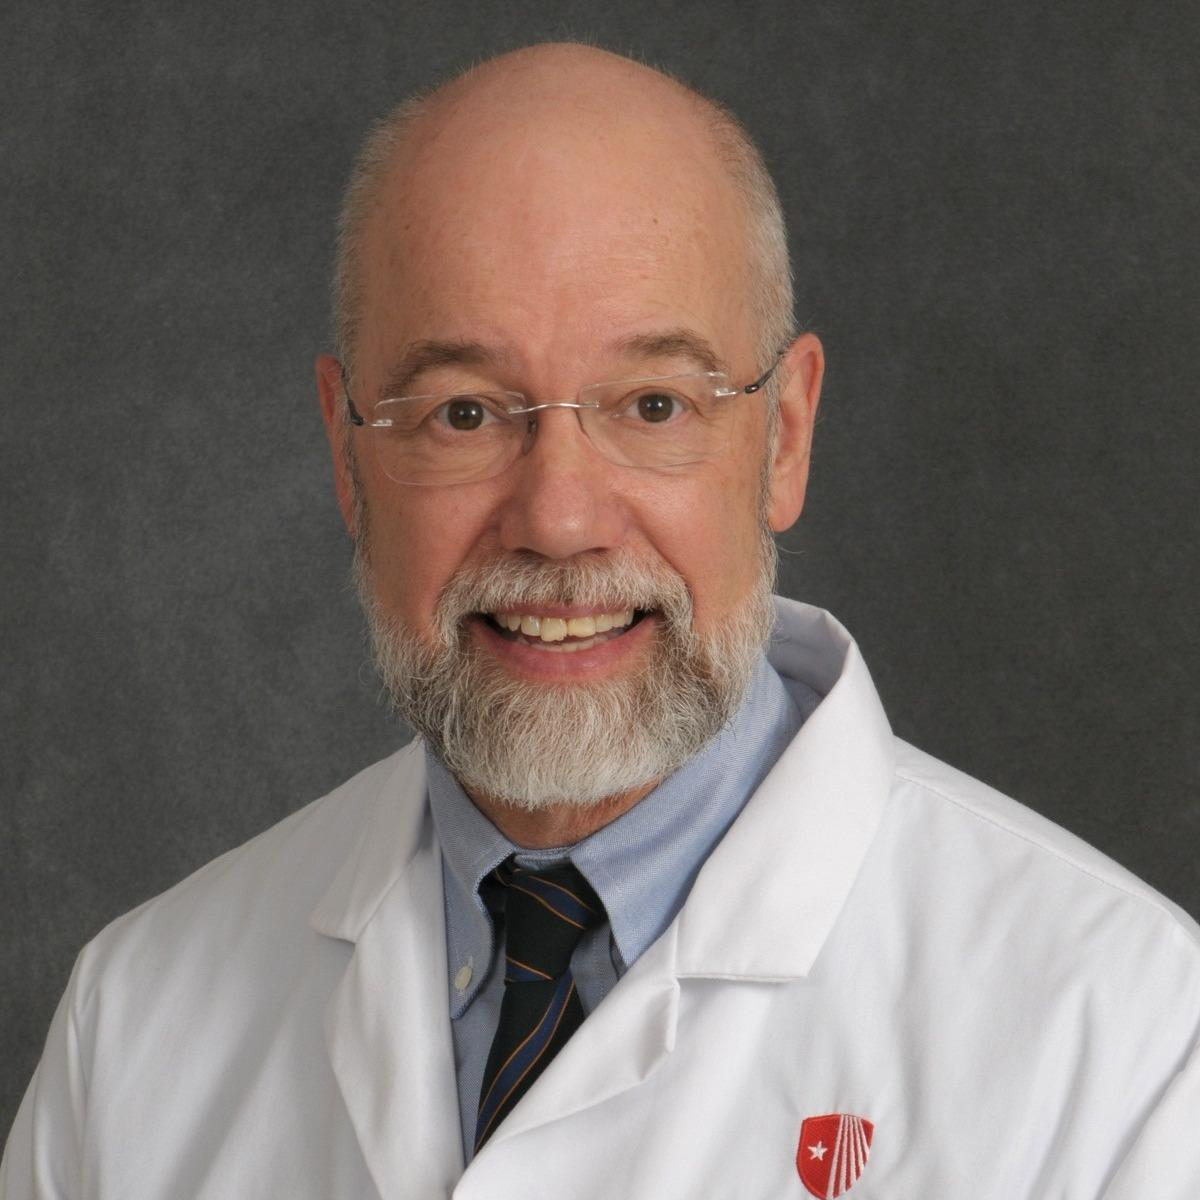 Edward S Valentine, MD